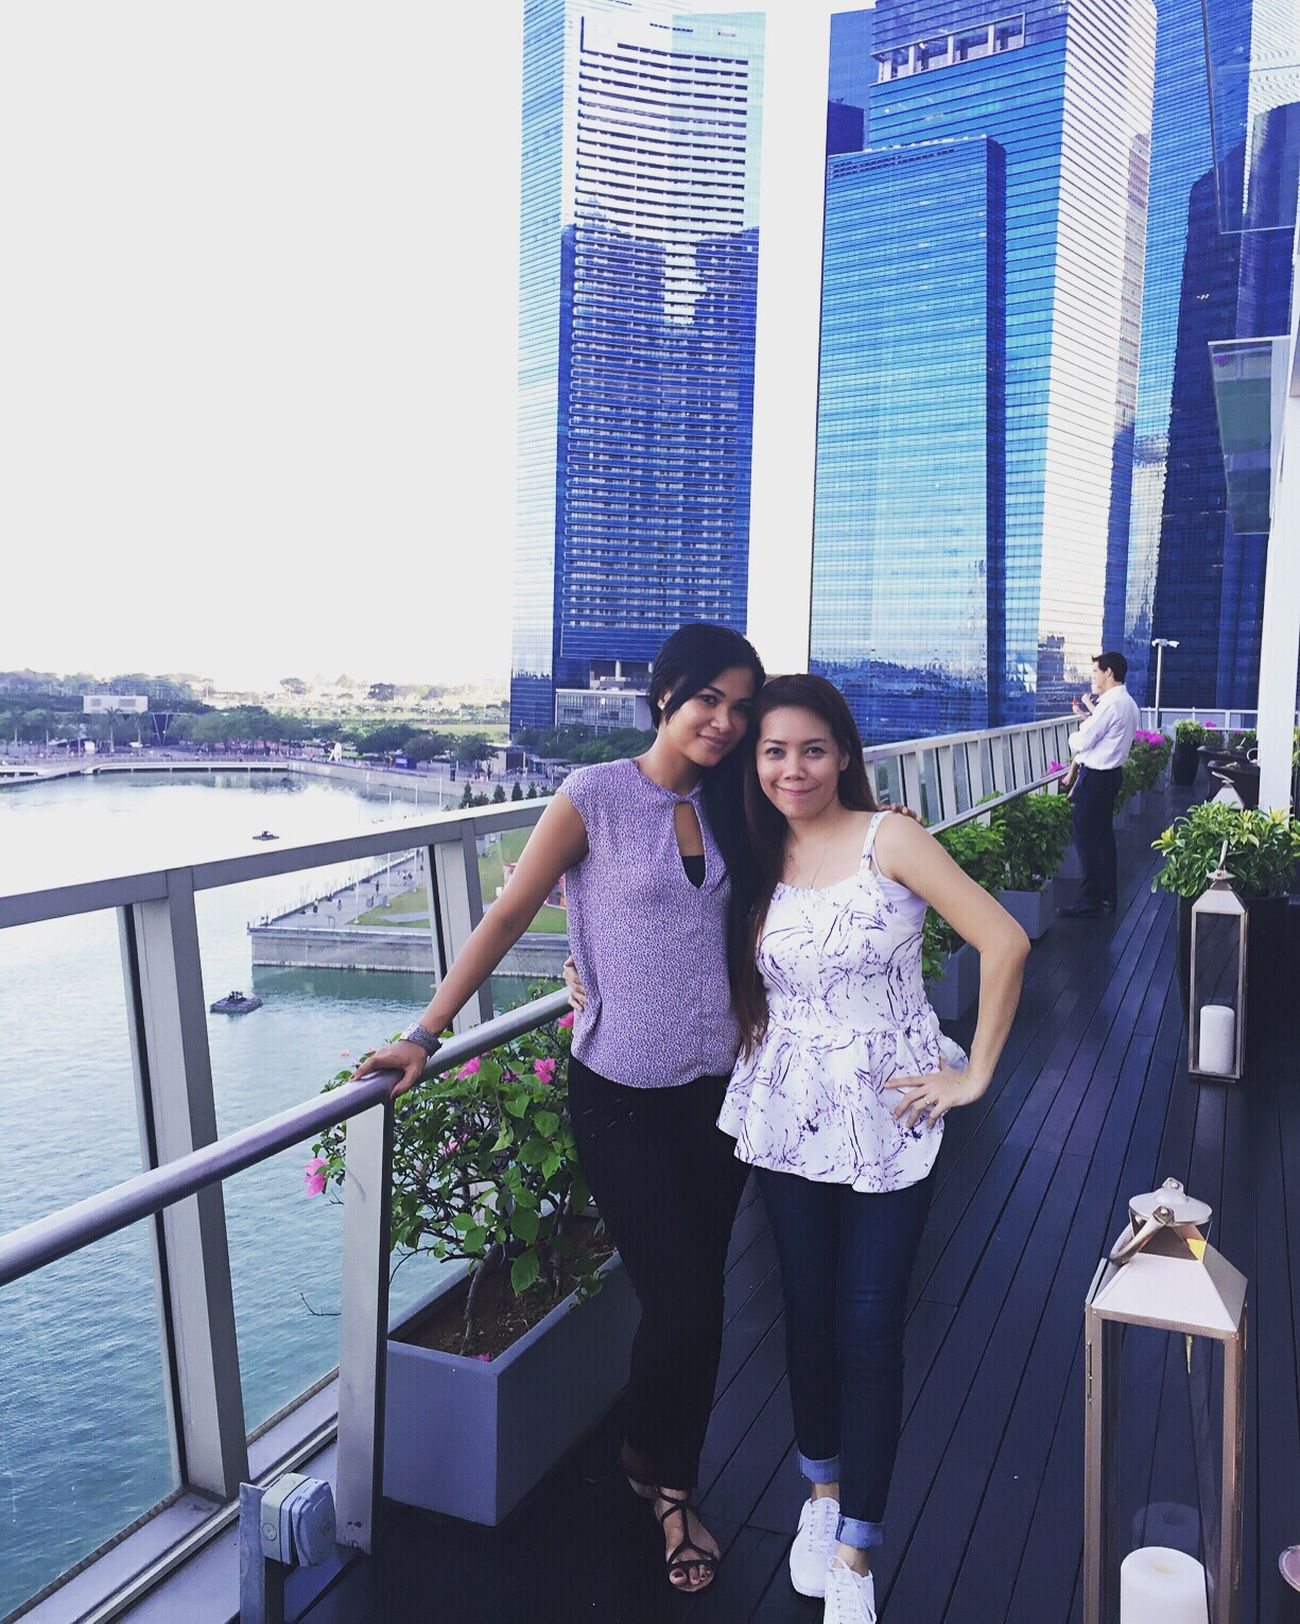 Hanging Out Friend That's Me Hello World Singapore Latepost TheFullertonHotel Lantern Happy EyeEmBestPics Popular First Eyeem Photo EyeEm Nature Lover Fashion&love&beauty EyeEm Best Shots Girls Asian  Friends Enjoying Life EyeEm Gallery Lovemetta Mymetta